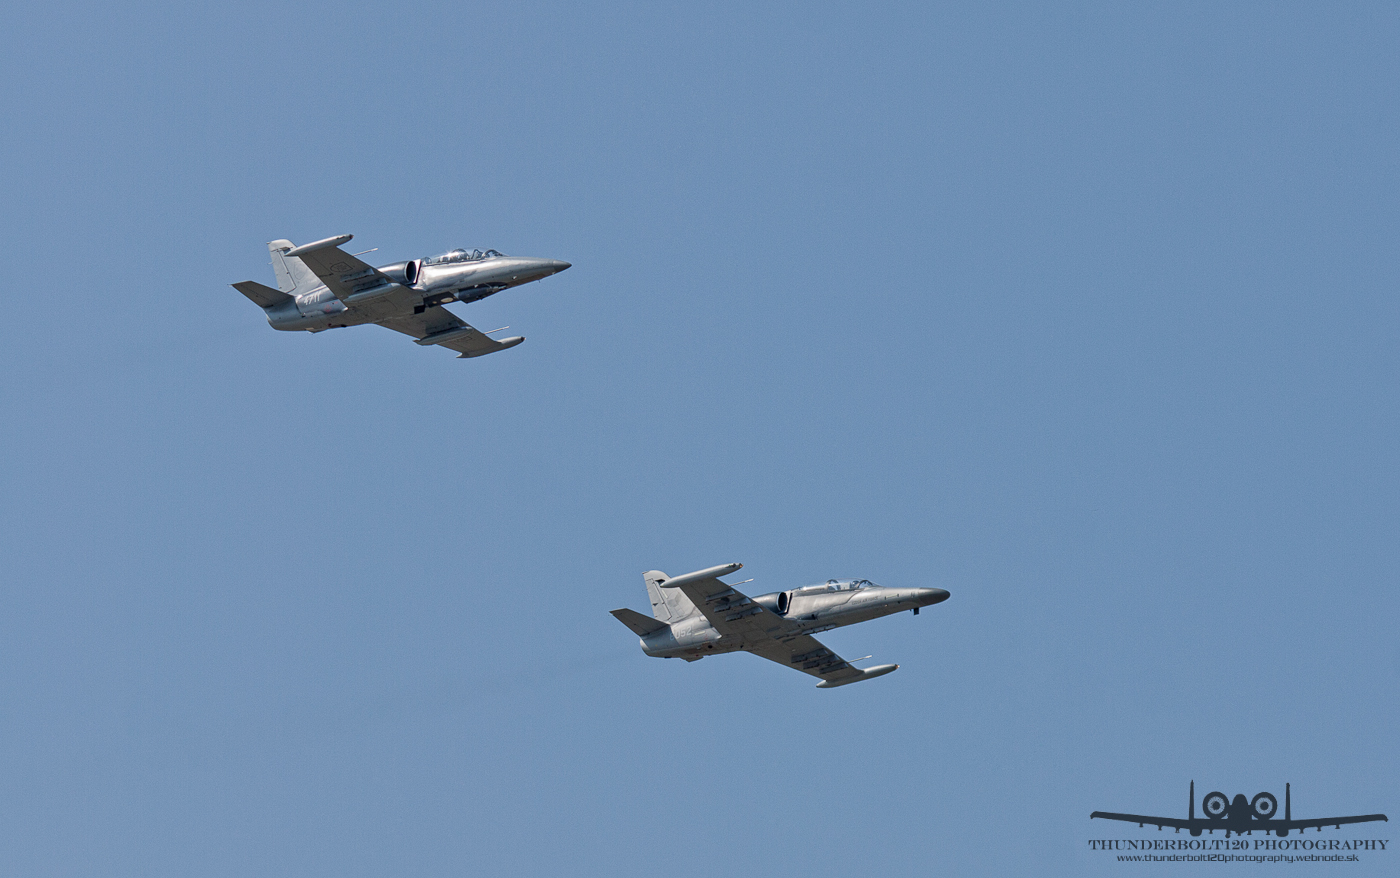 L-39 and L-159